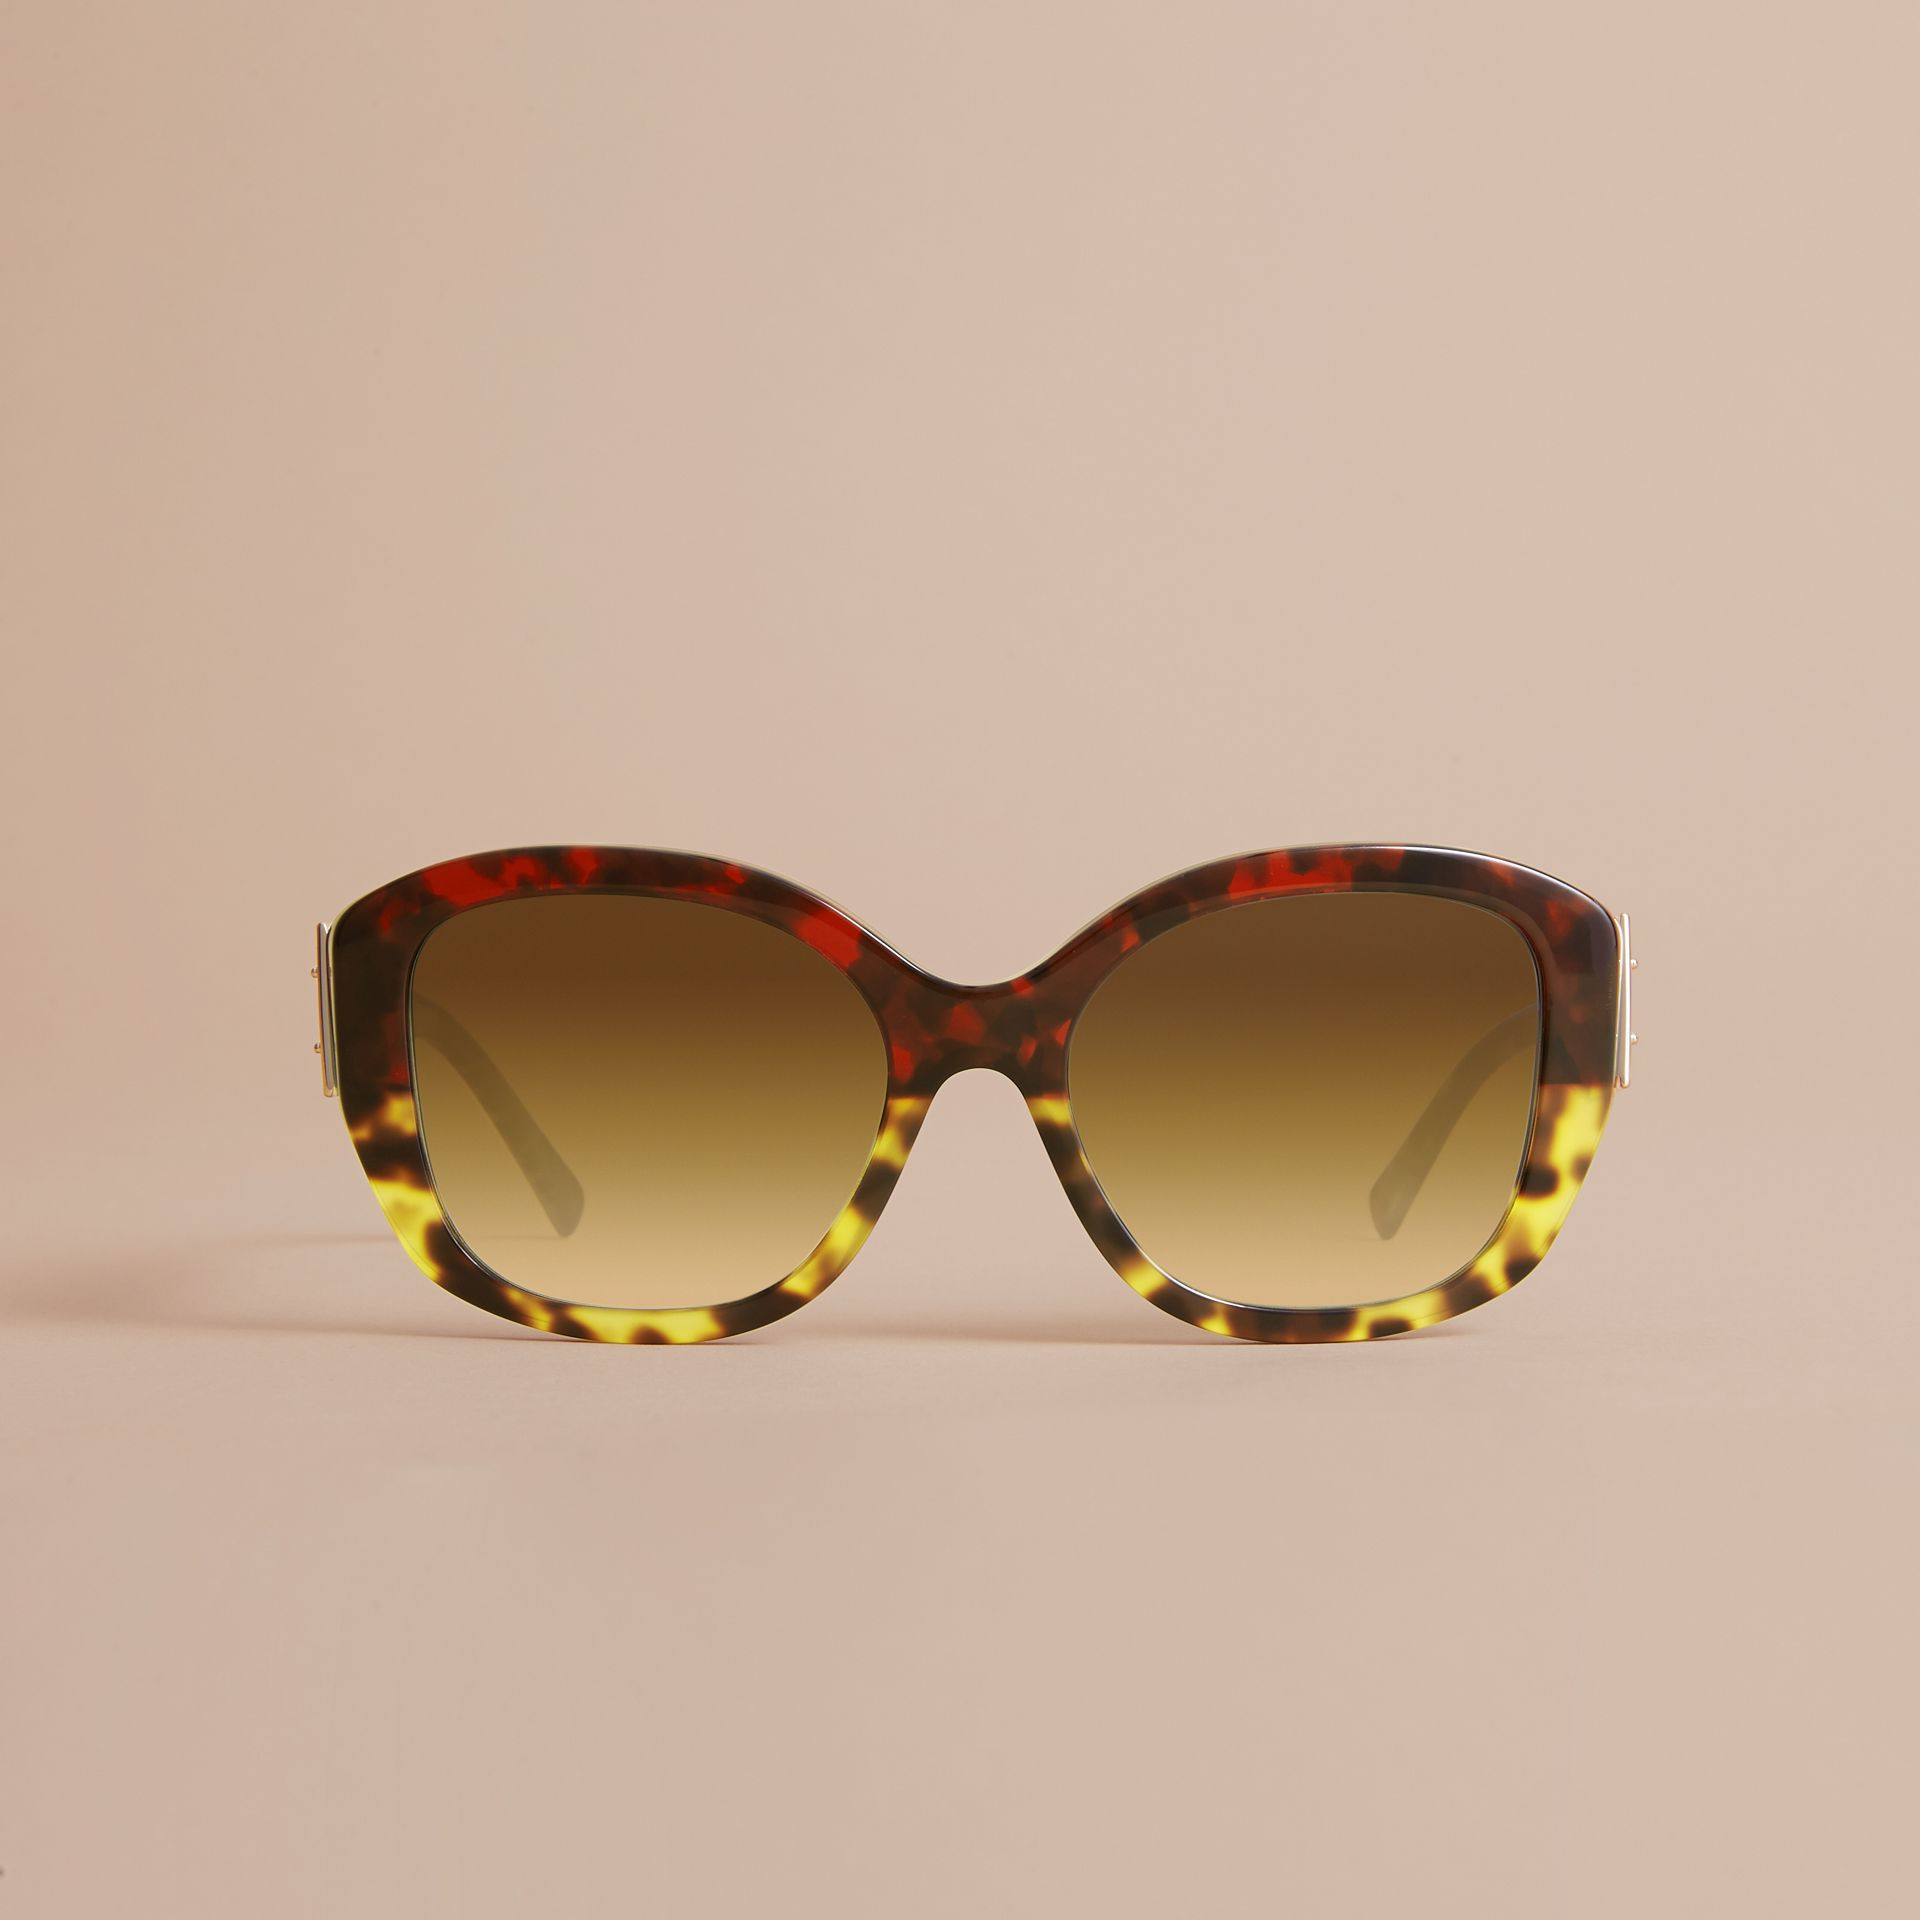 Buckle Detail Oversize Square Frame Sunglasses in Amber Yellow - Women | Burberry Canada - gallery image 3